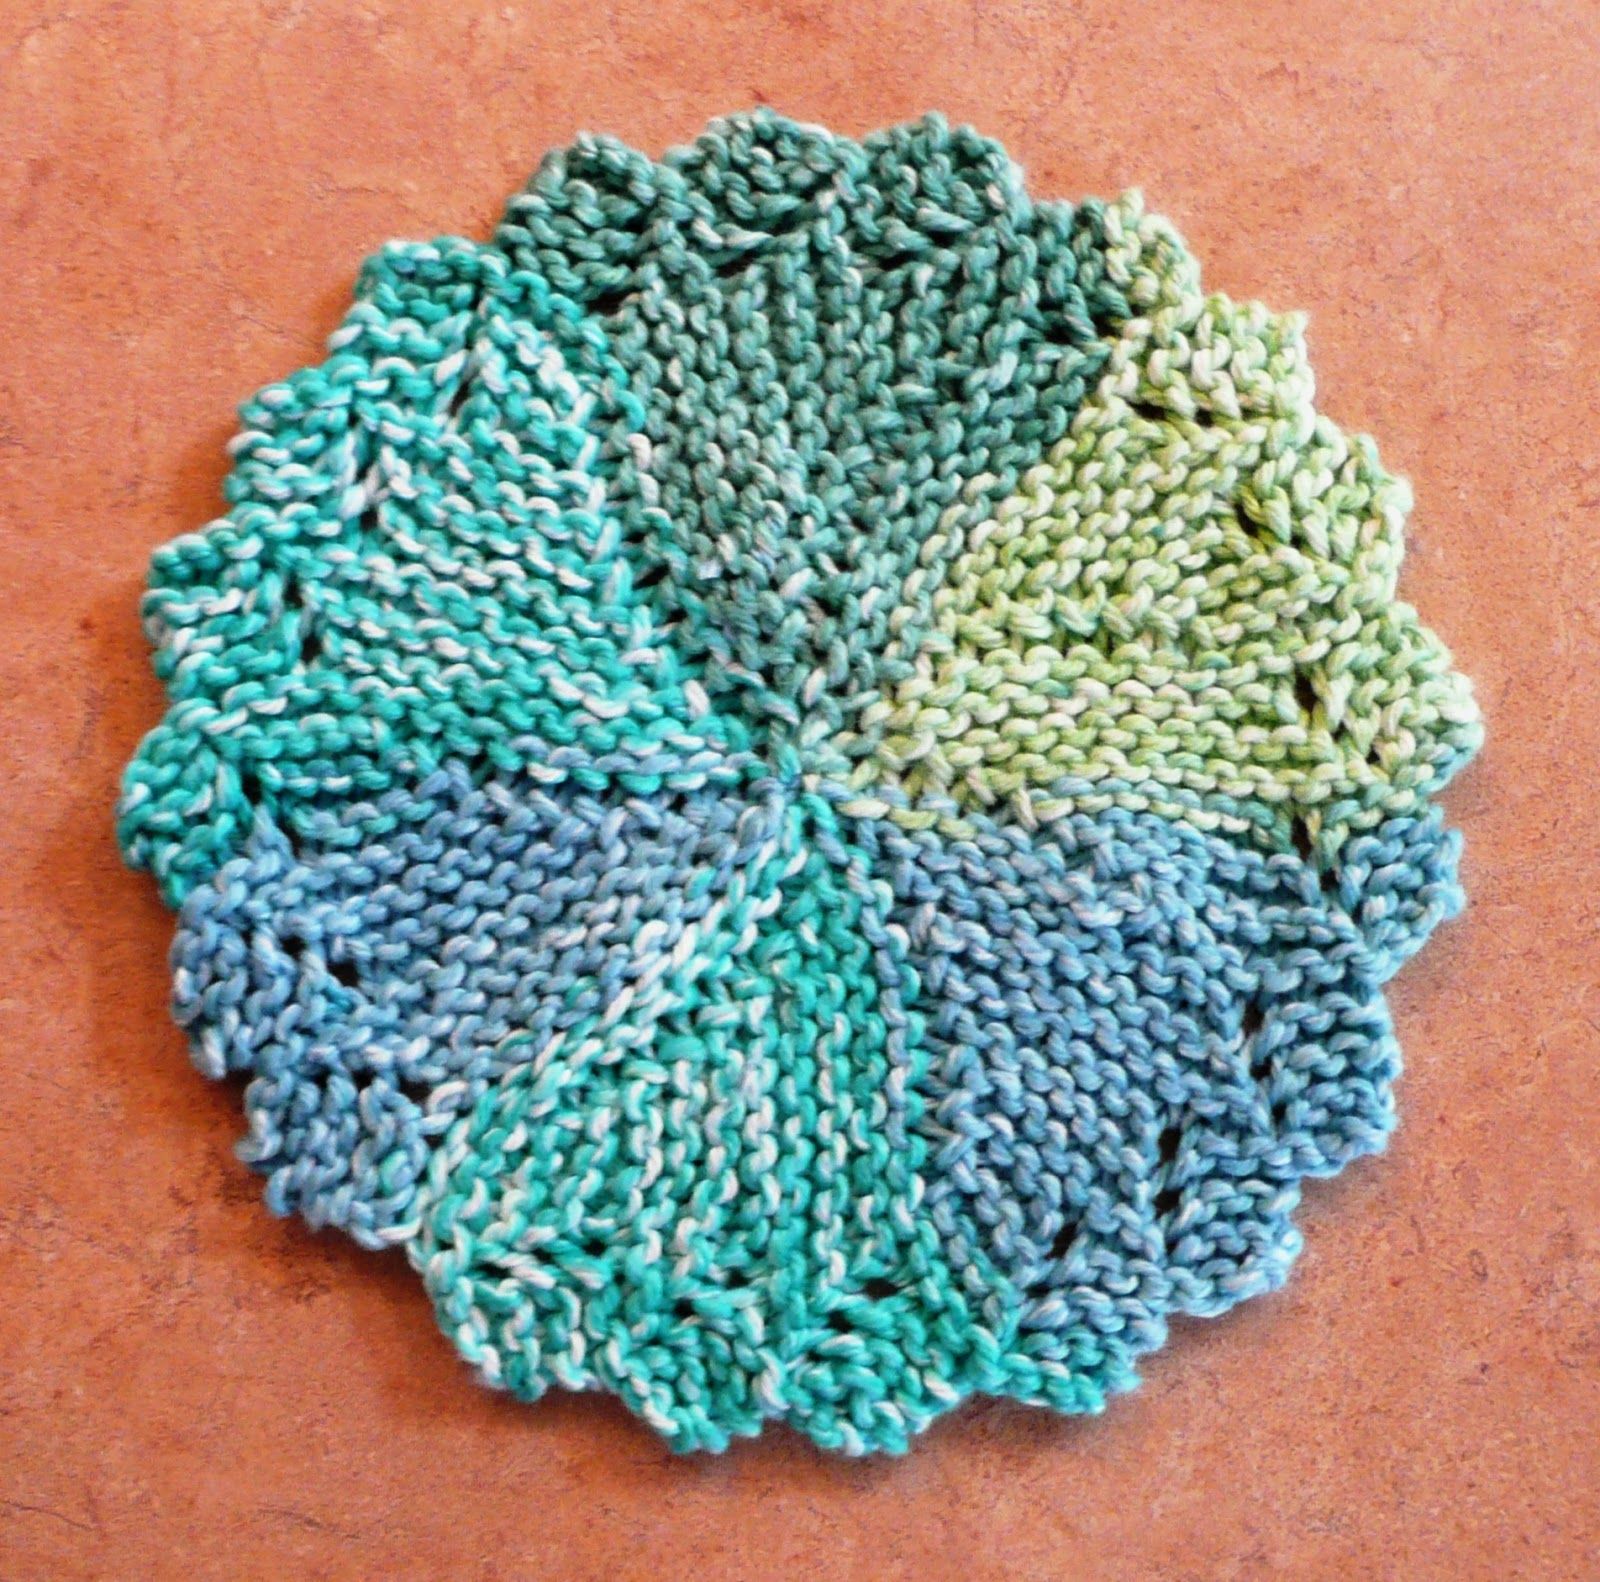 Free Knitted Round Dishcloth Patterns : Perfect One-Ounce Dishcloth - FREE Patterns: FREE PATTERN #11 - Knitlist Lacy...